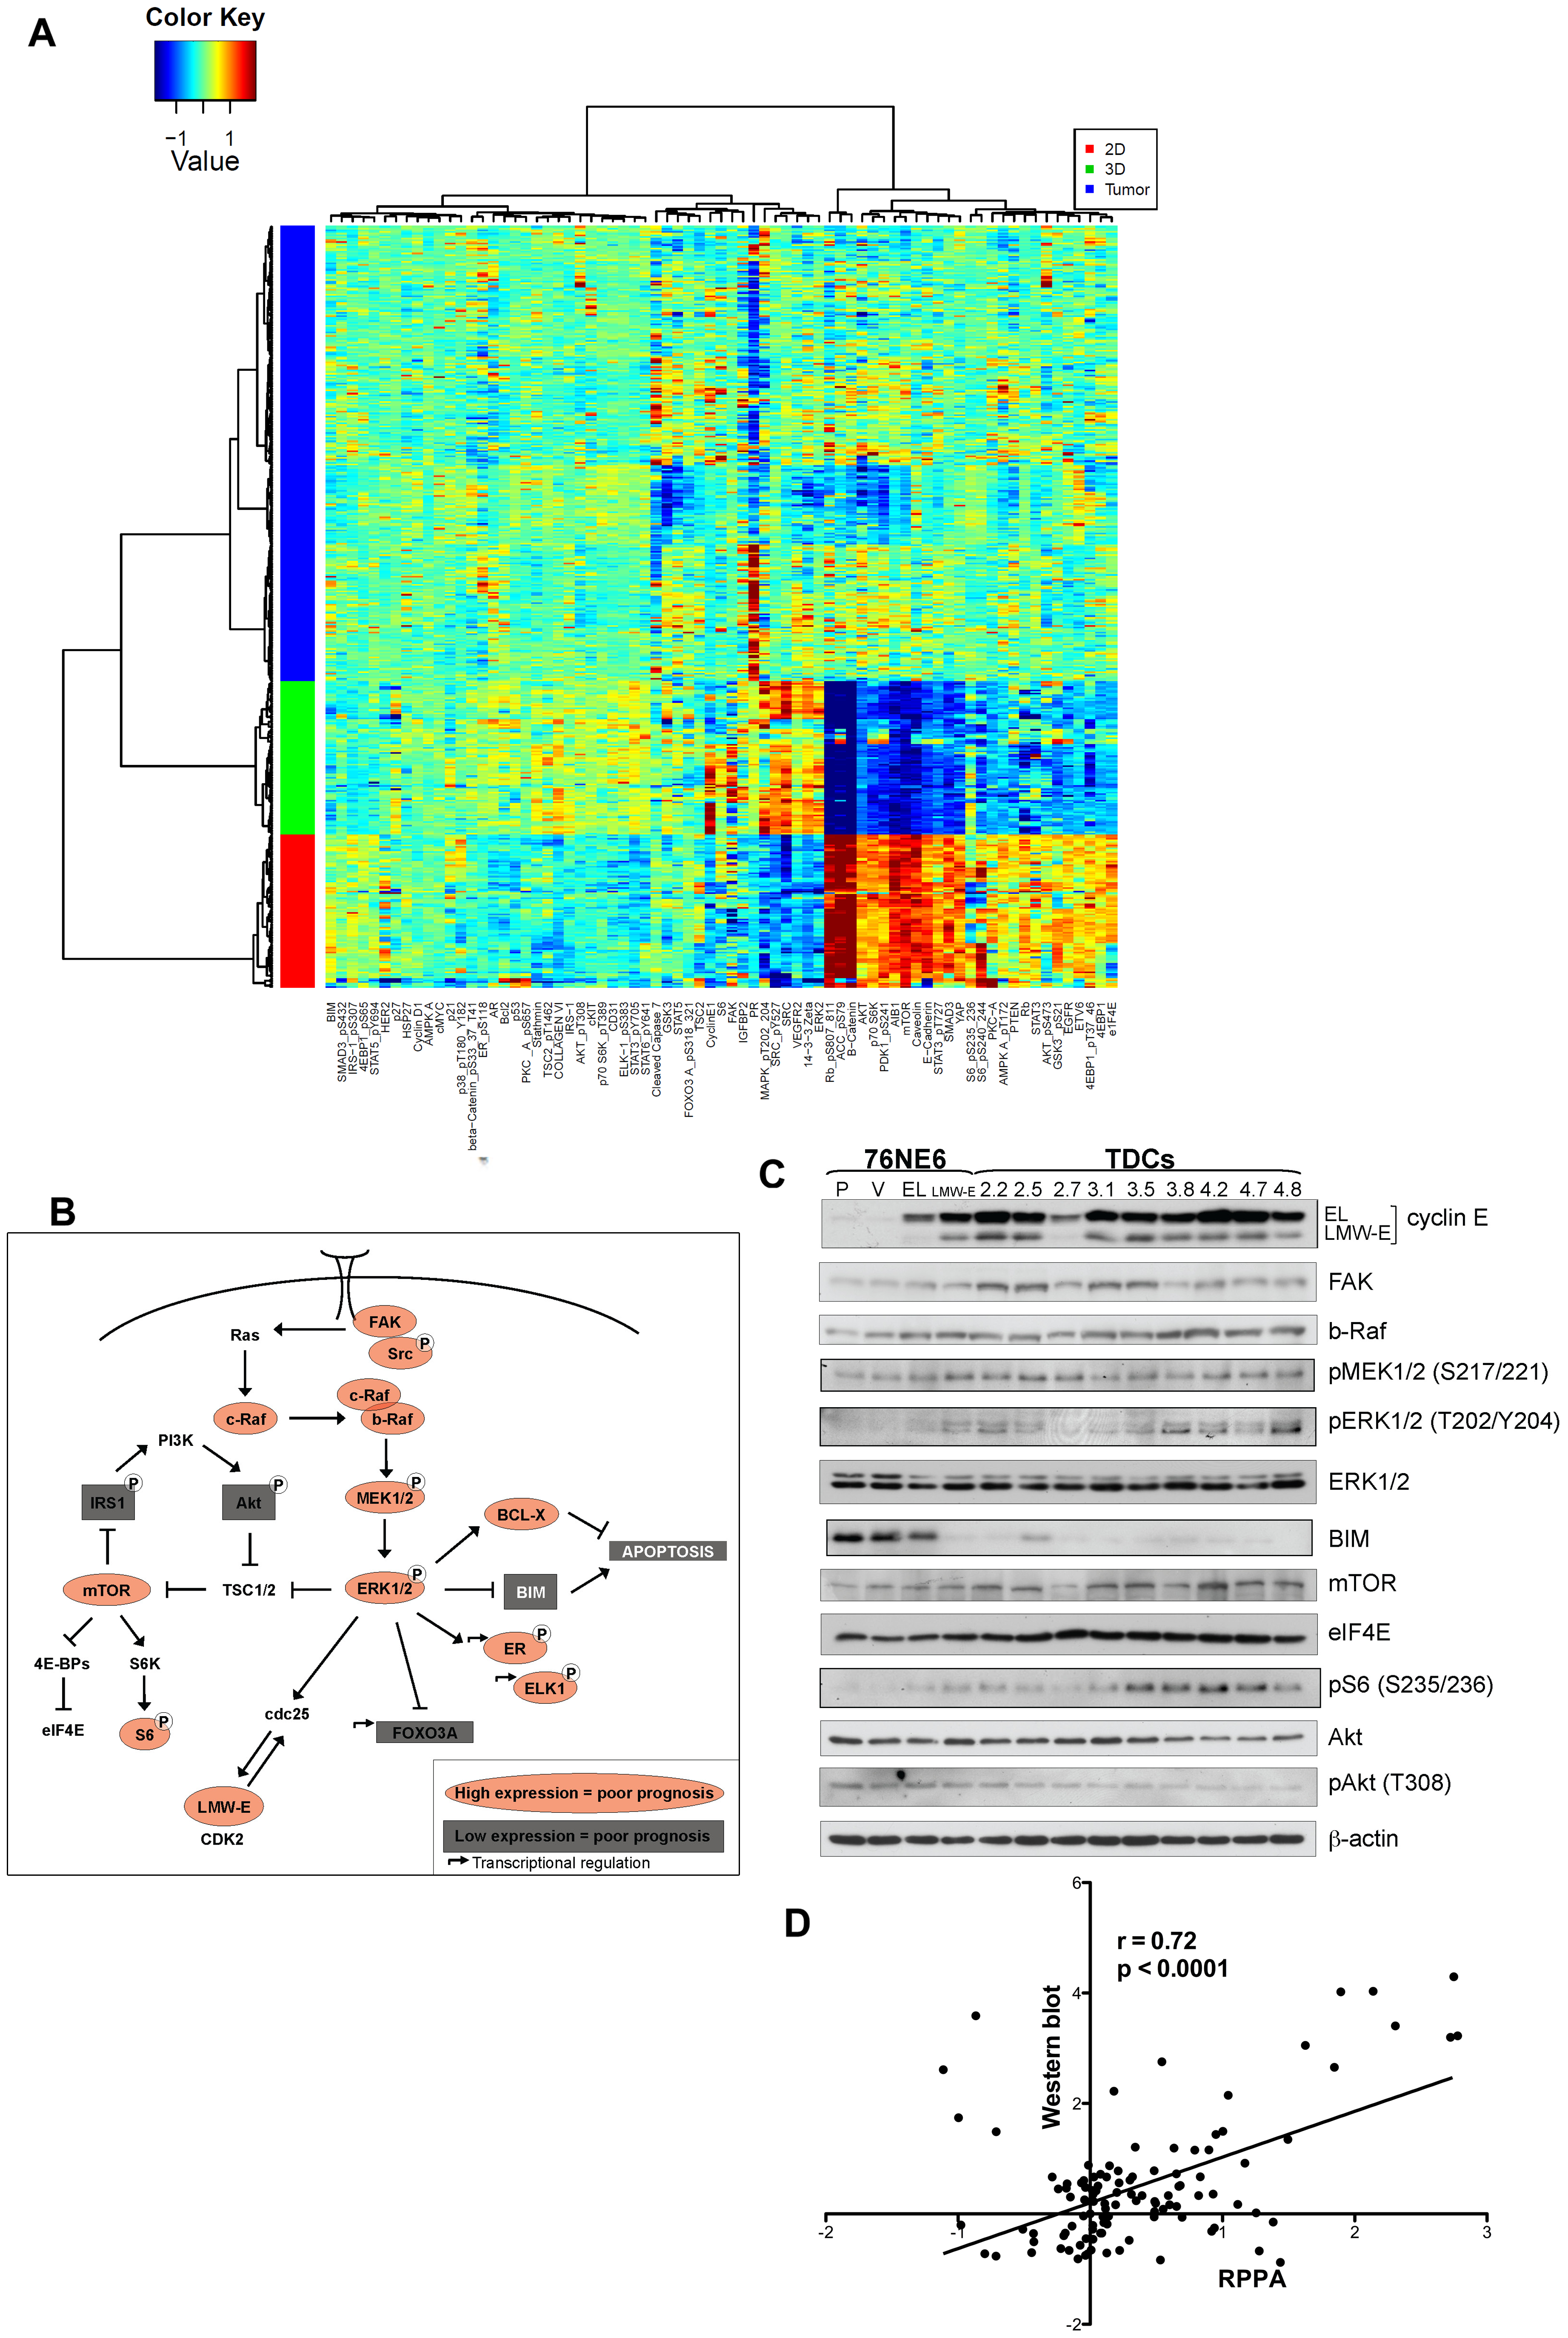 High LMW-E expression is associated with activated b-Raf-ERK1/2-mTOR pathway <i>in vitro</i> and in patient tissues.